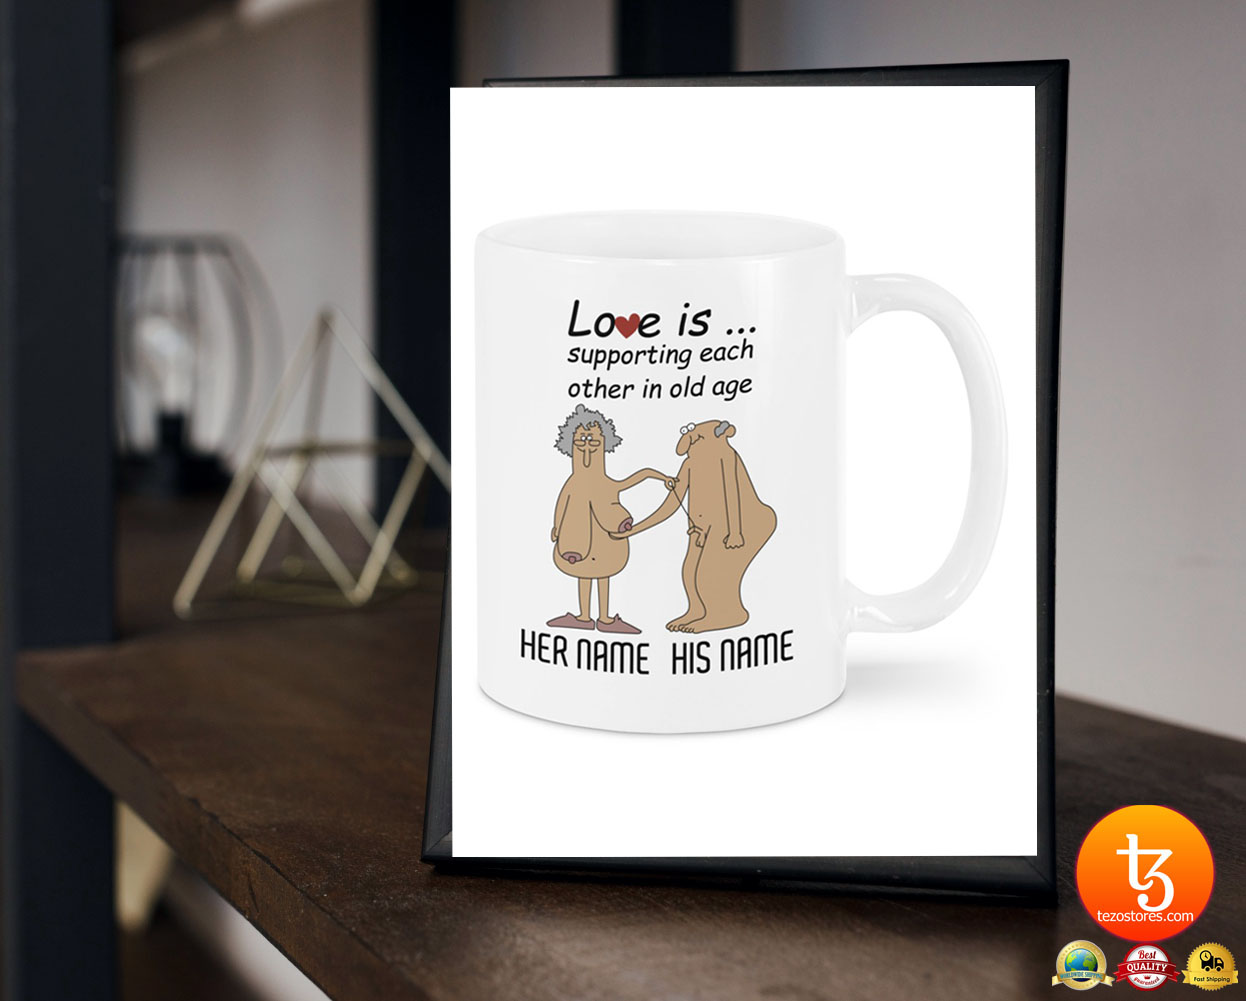 Love is supporting each other in old age custom personalized name mug 17